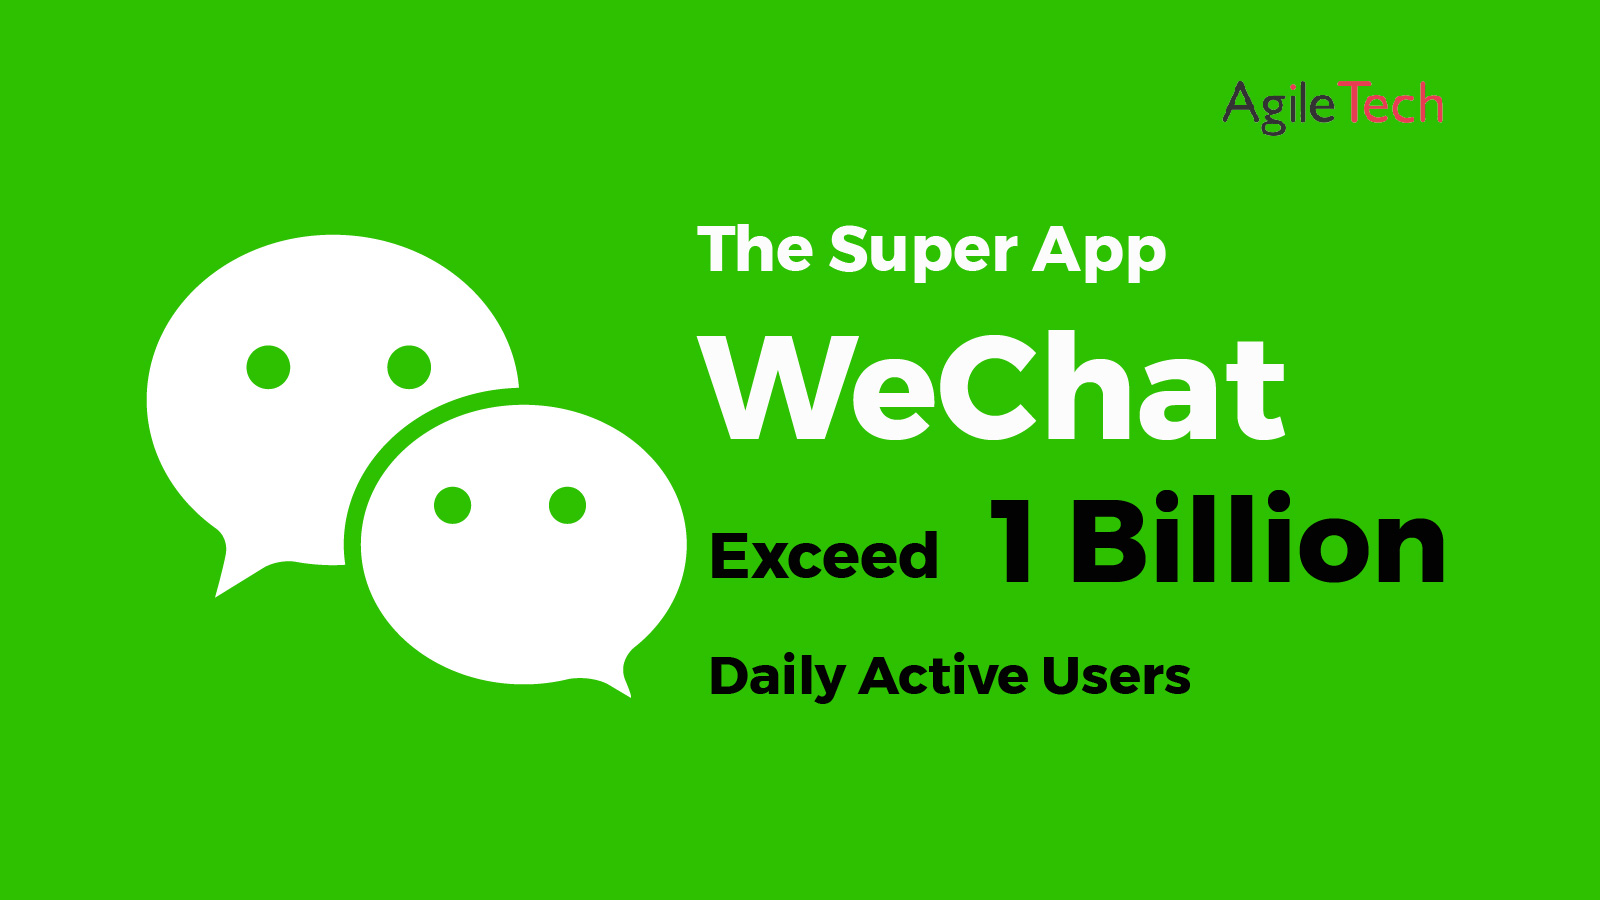 wechat super app exceed 1 billion daily active users